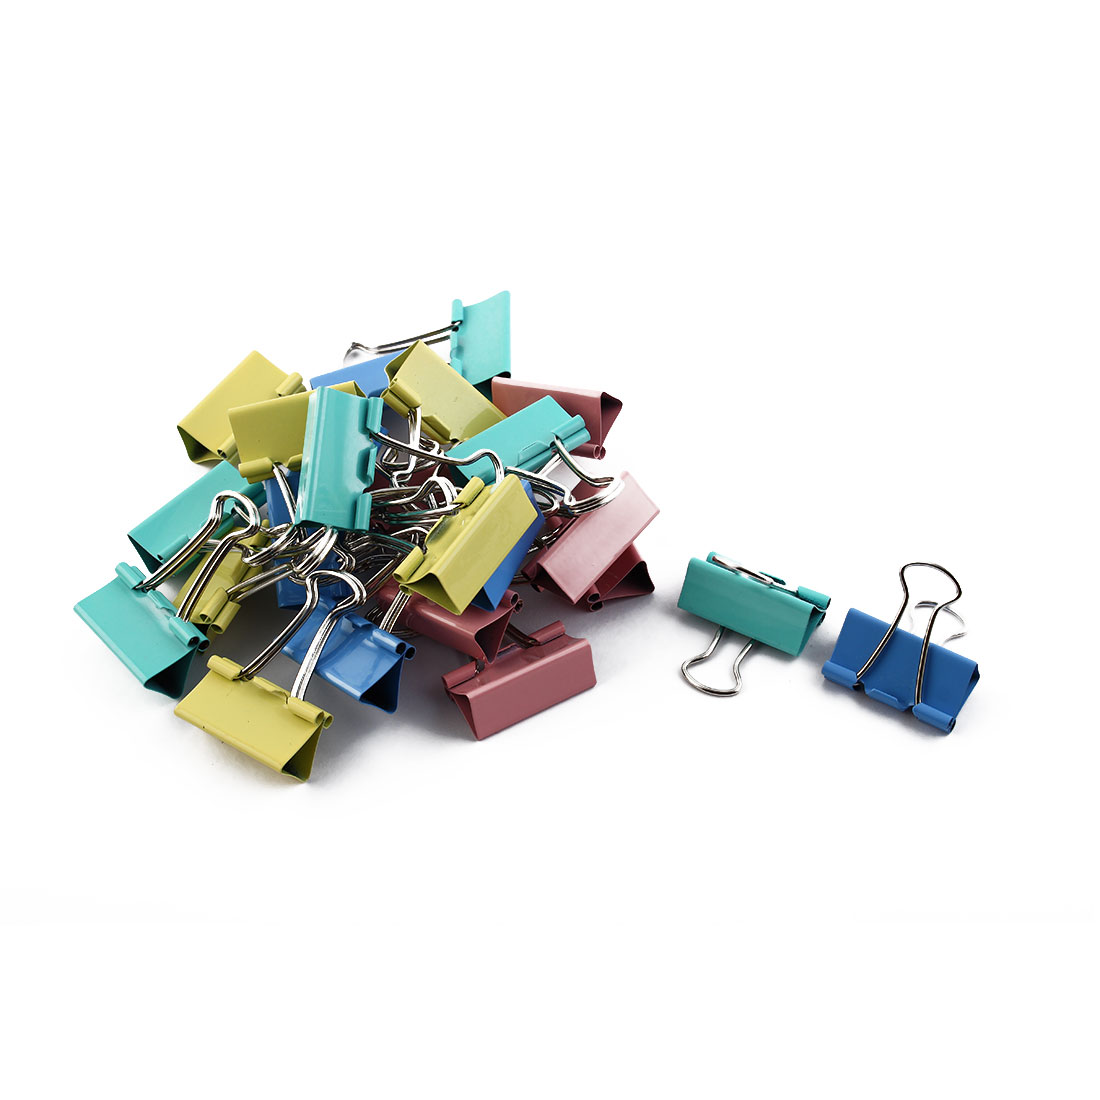 Office School Metal File Document Paper Binder Clips Clamps Organizer Colorful 24pcs